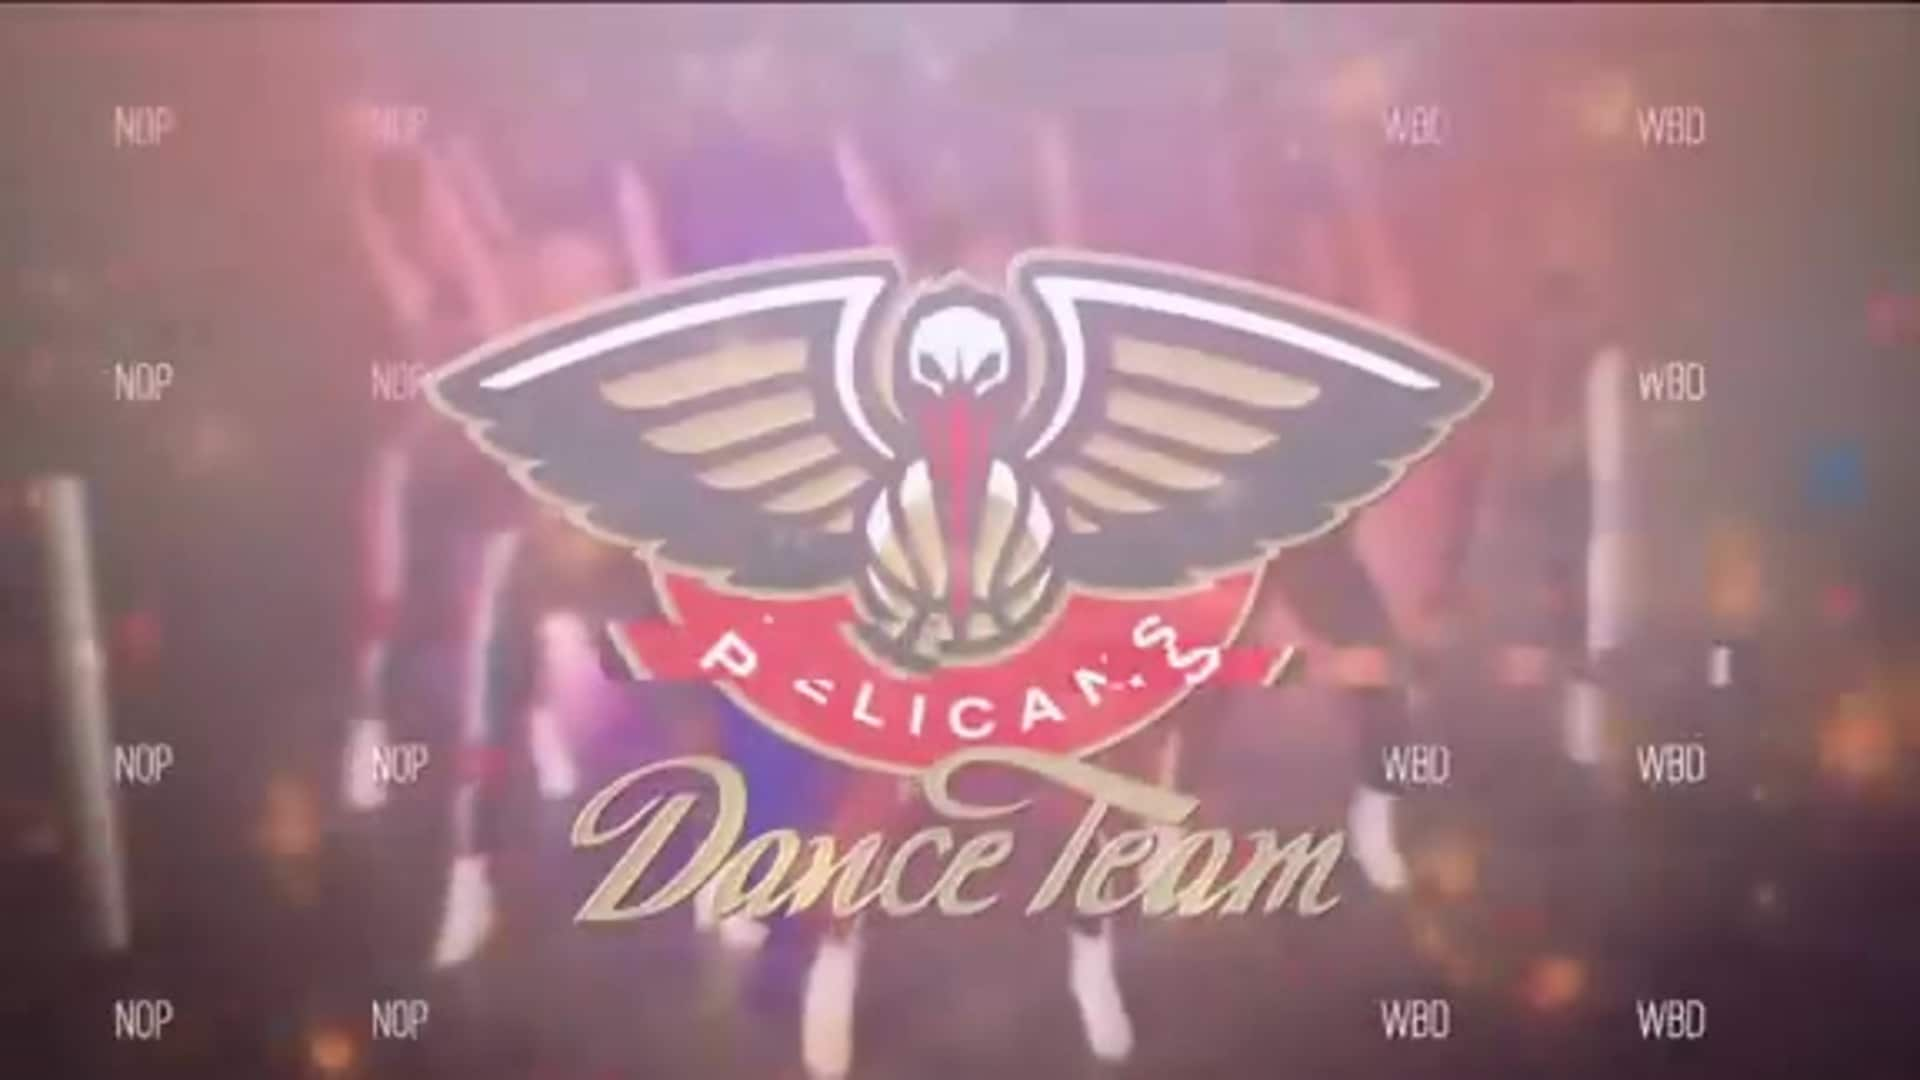 Entertainment: Pelicans Dance Team 3rd quarter performance - December 9 vs. Detroit Pistons